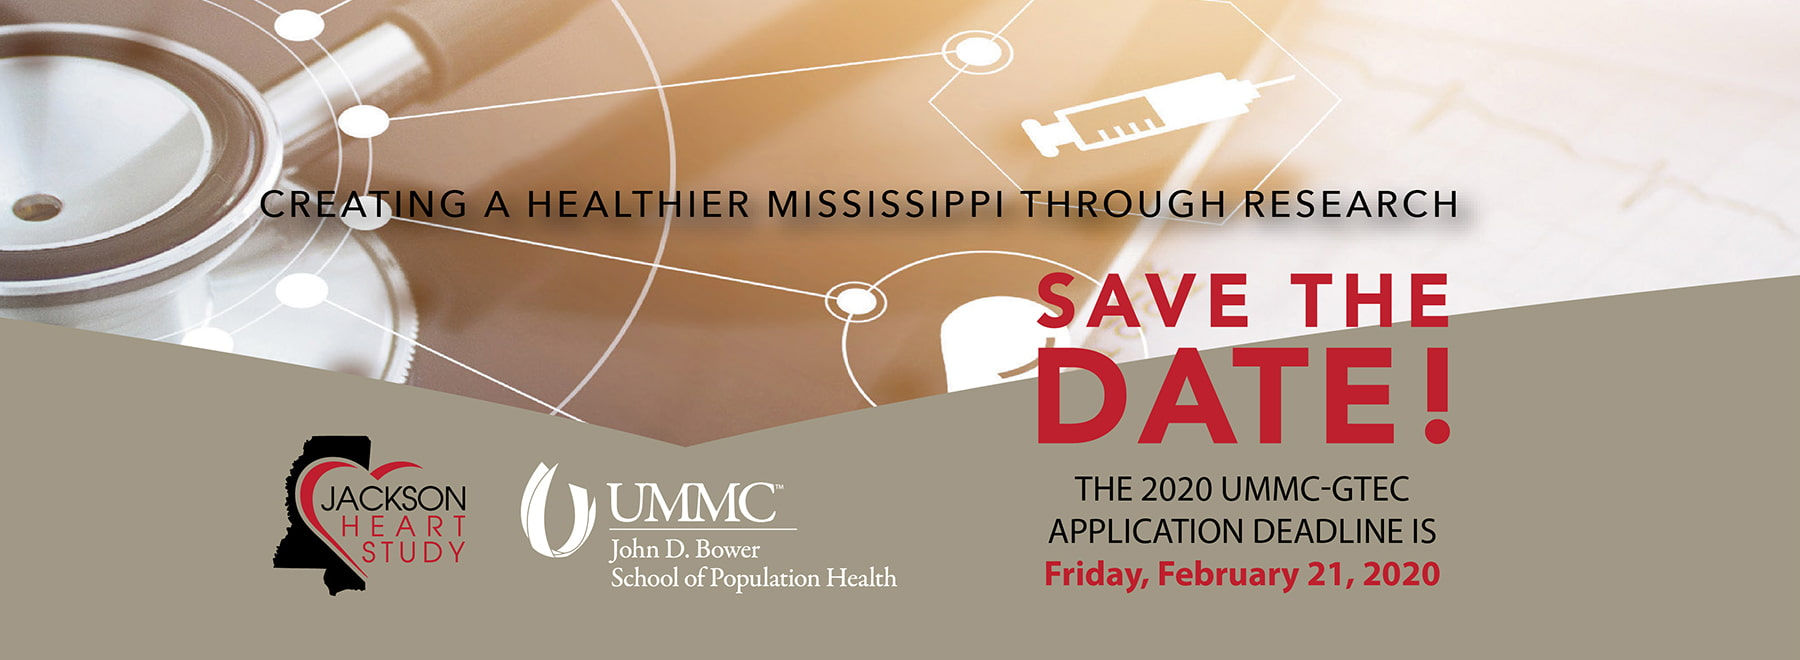 Creating a healthier Mississippi through research. Jackson Heart Study. UMMC John D. Bower School of Population Health. Save the date! The 2020 UMMC-GTEC Application Deadline is Friday, February 21, 2020.